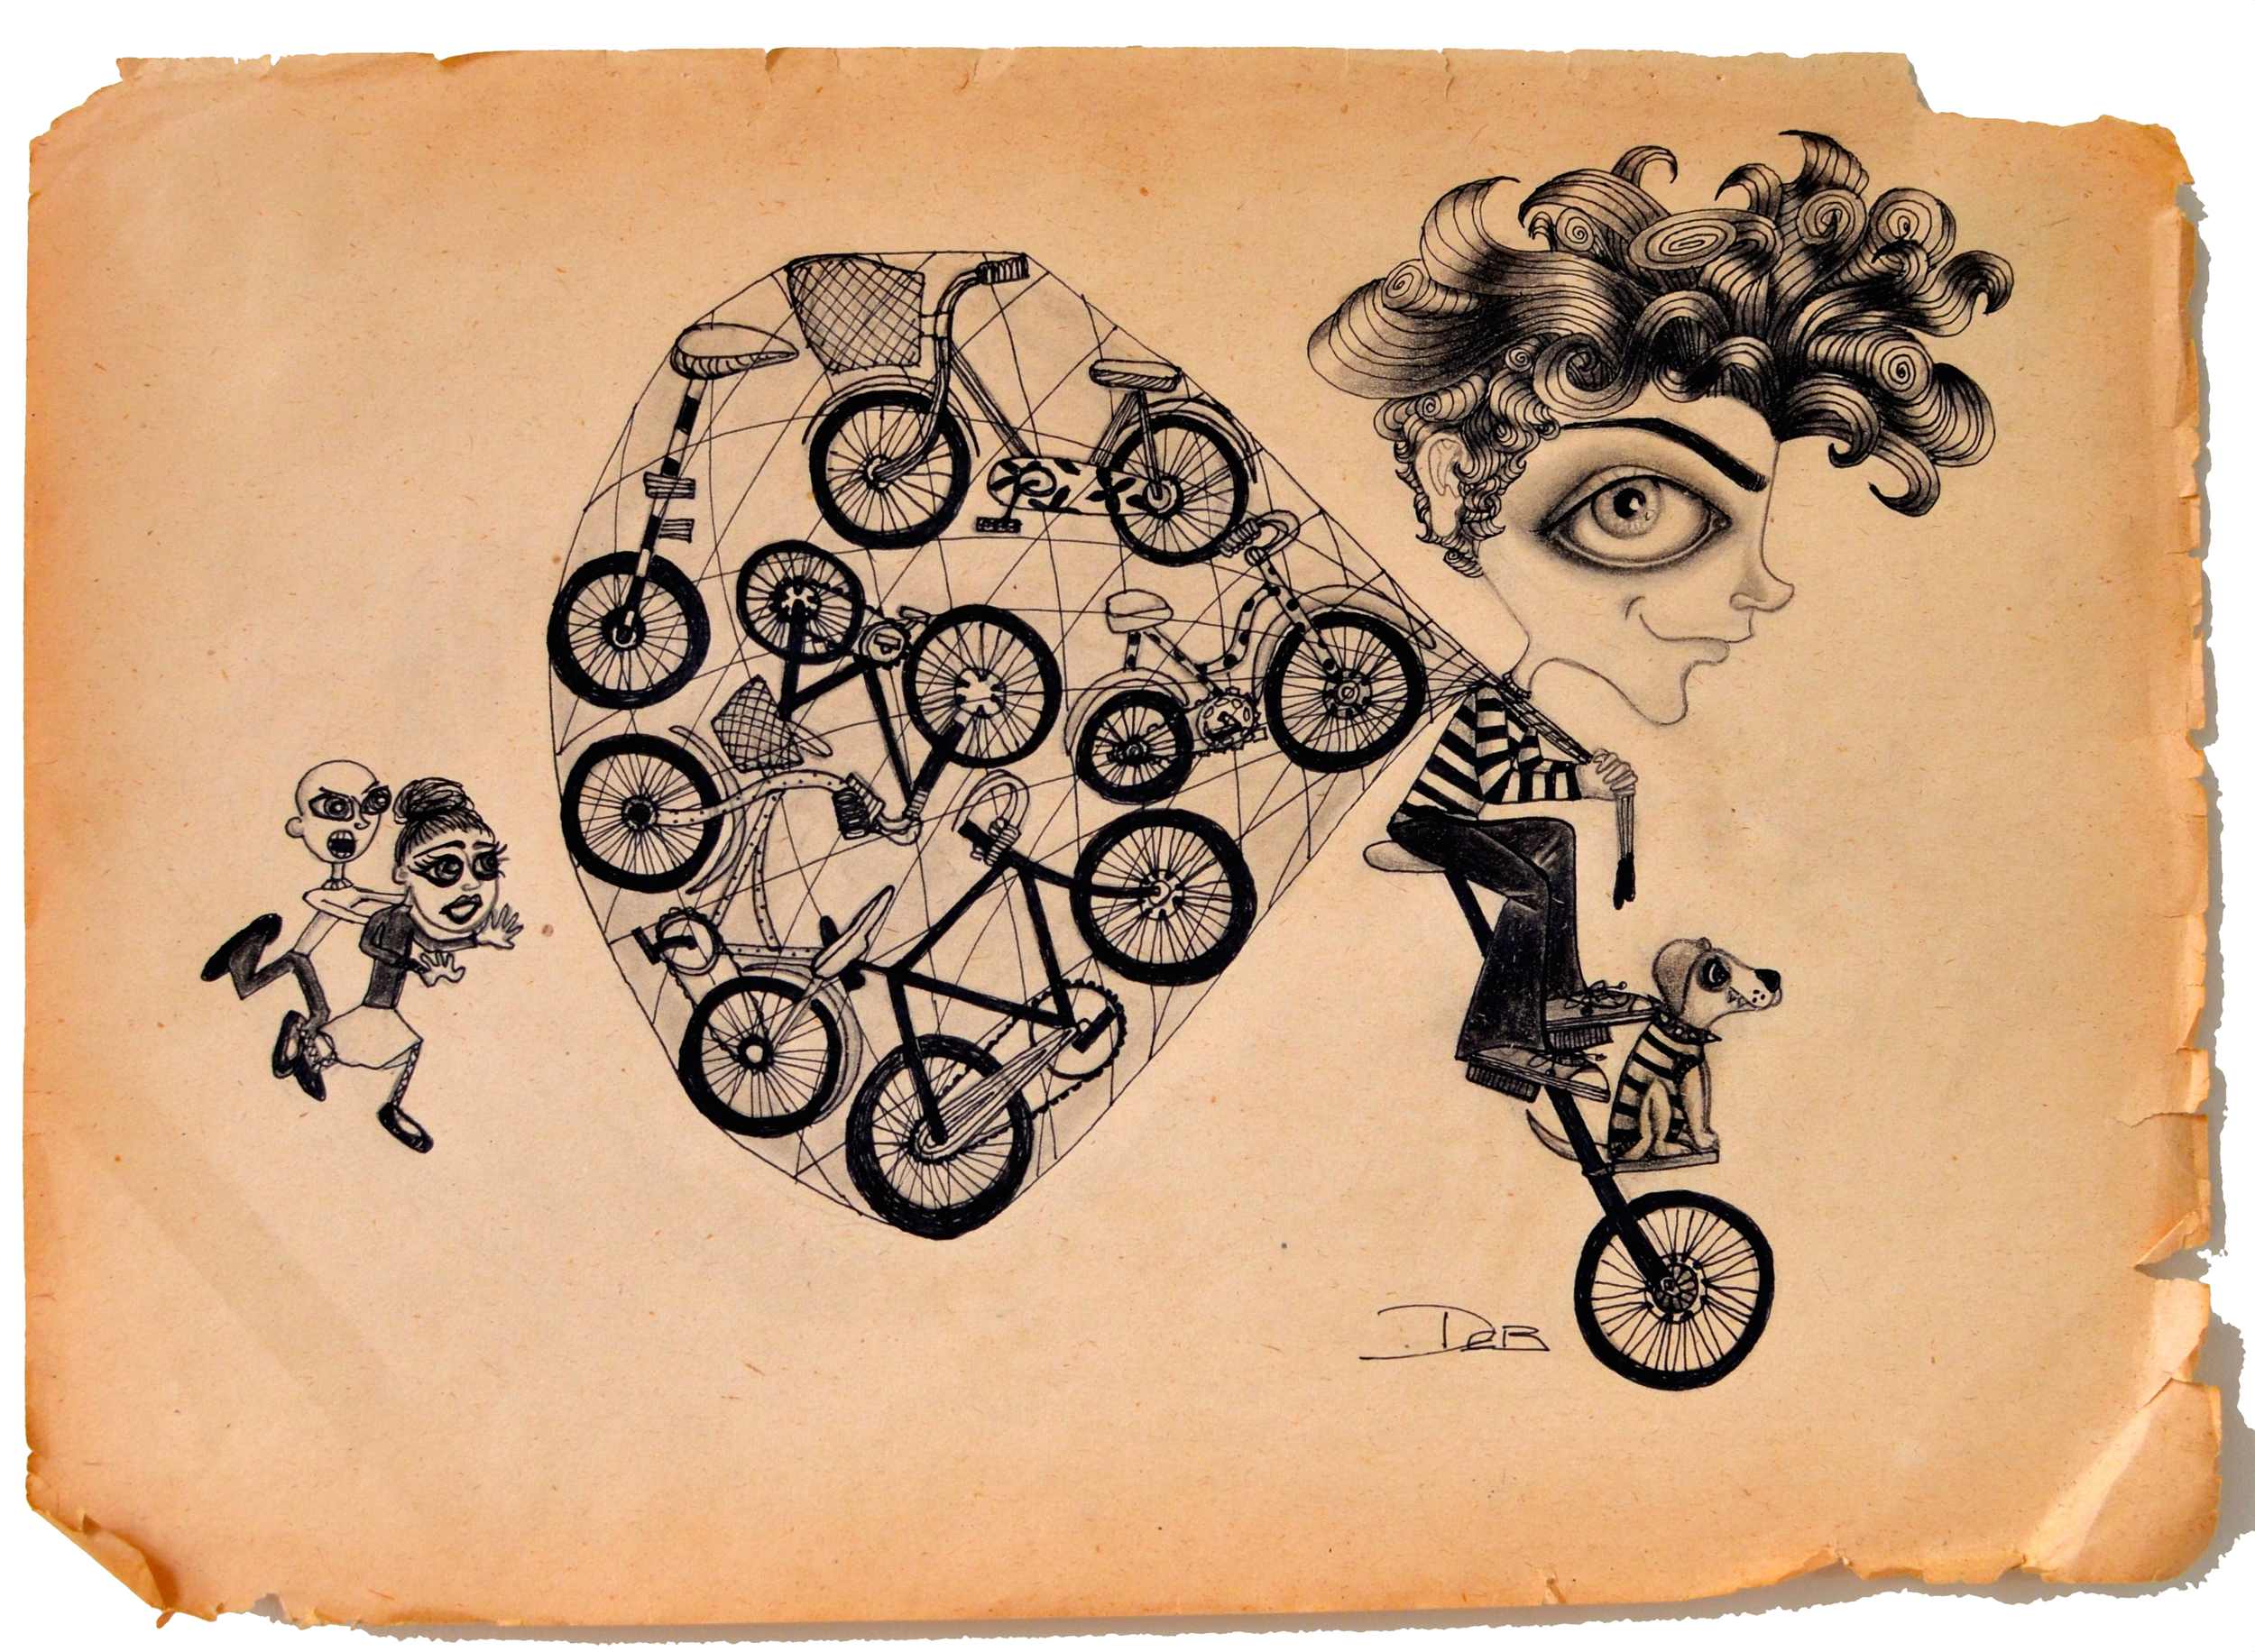 THE BYCICLE THIEF